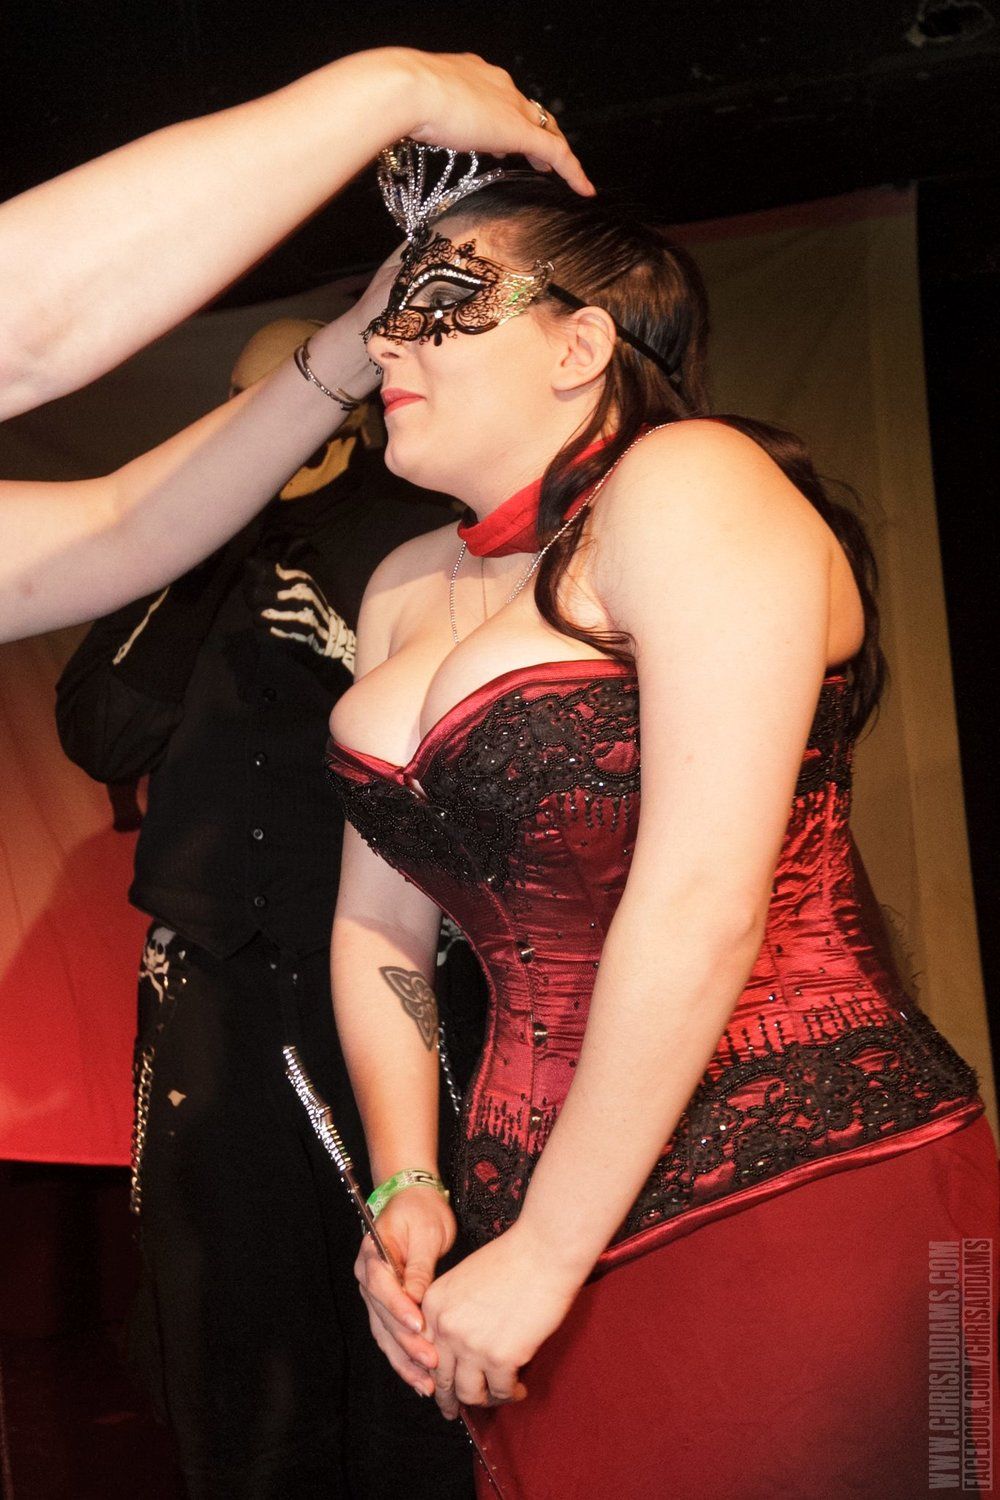 TheHavenClub-Goth-Industrial-Dance-Alternative-Northampton-MA (28).jpg